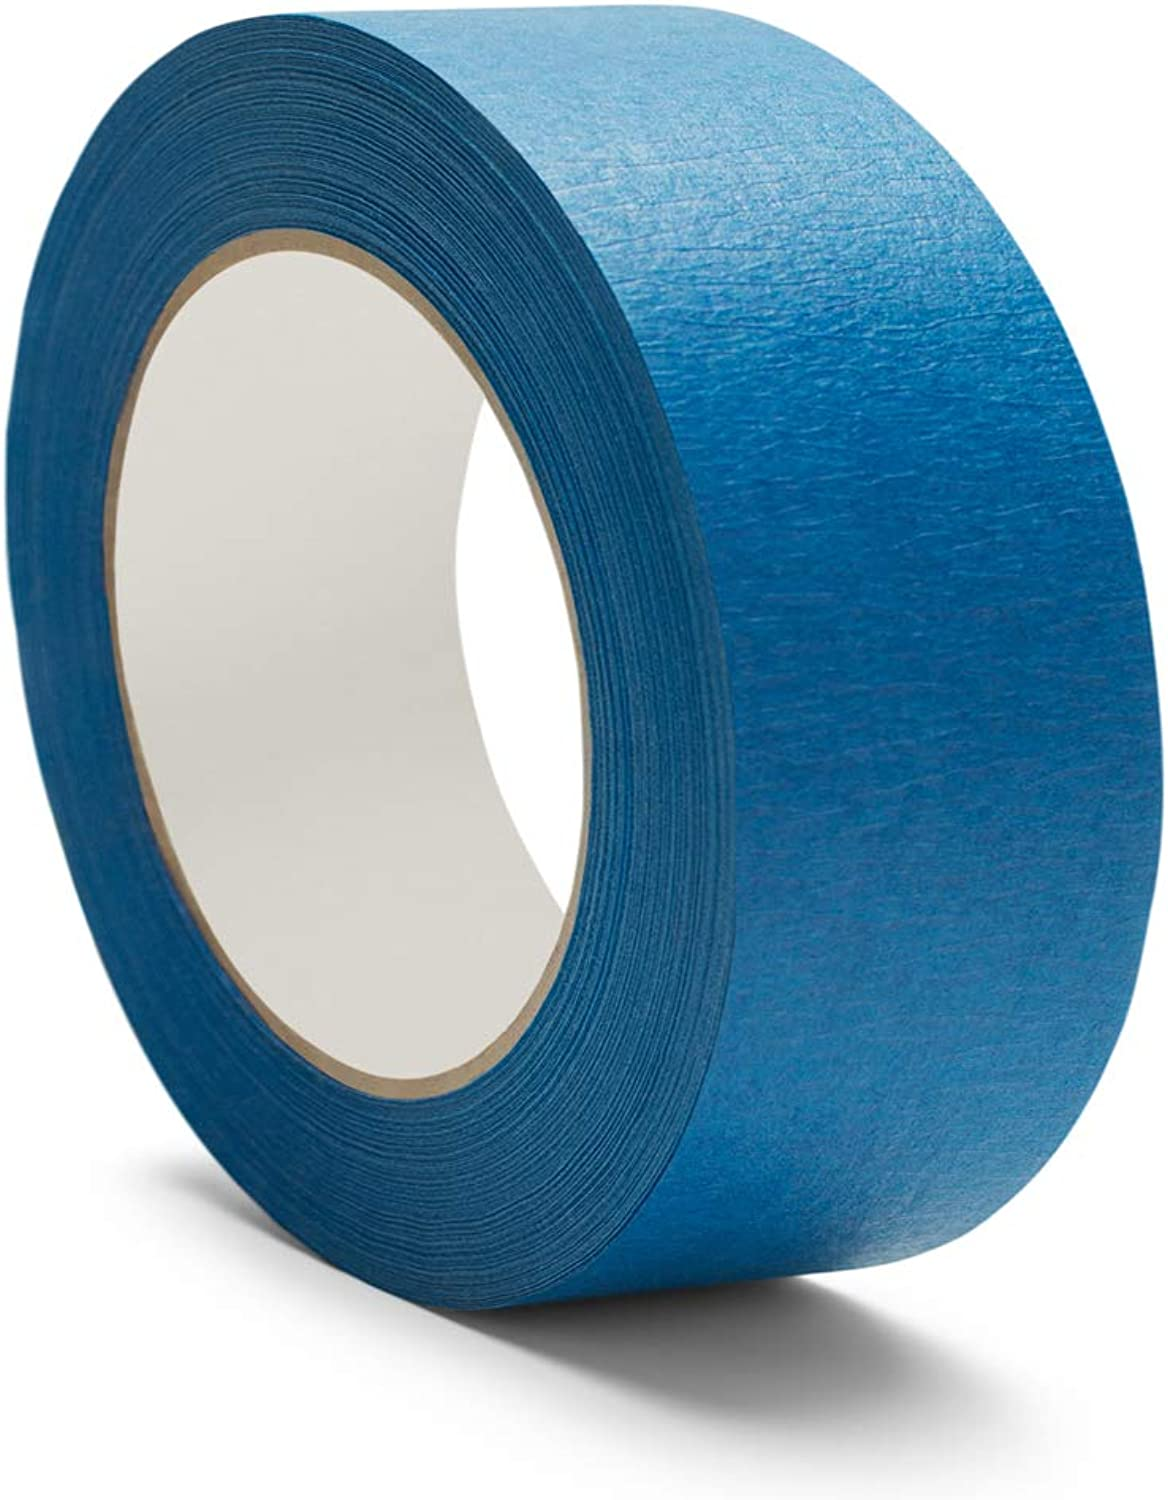 48 Rolls 1 Blau Painters Masking Tape Made in USA 5.6 Mil 60 Yards by PackagingSuppliesByMail B00E8BJ79W     | Economy